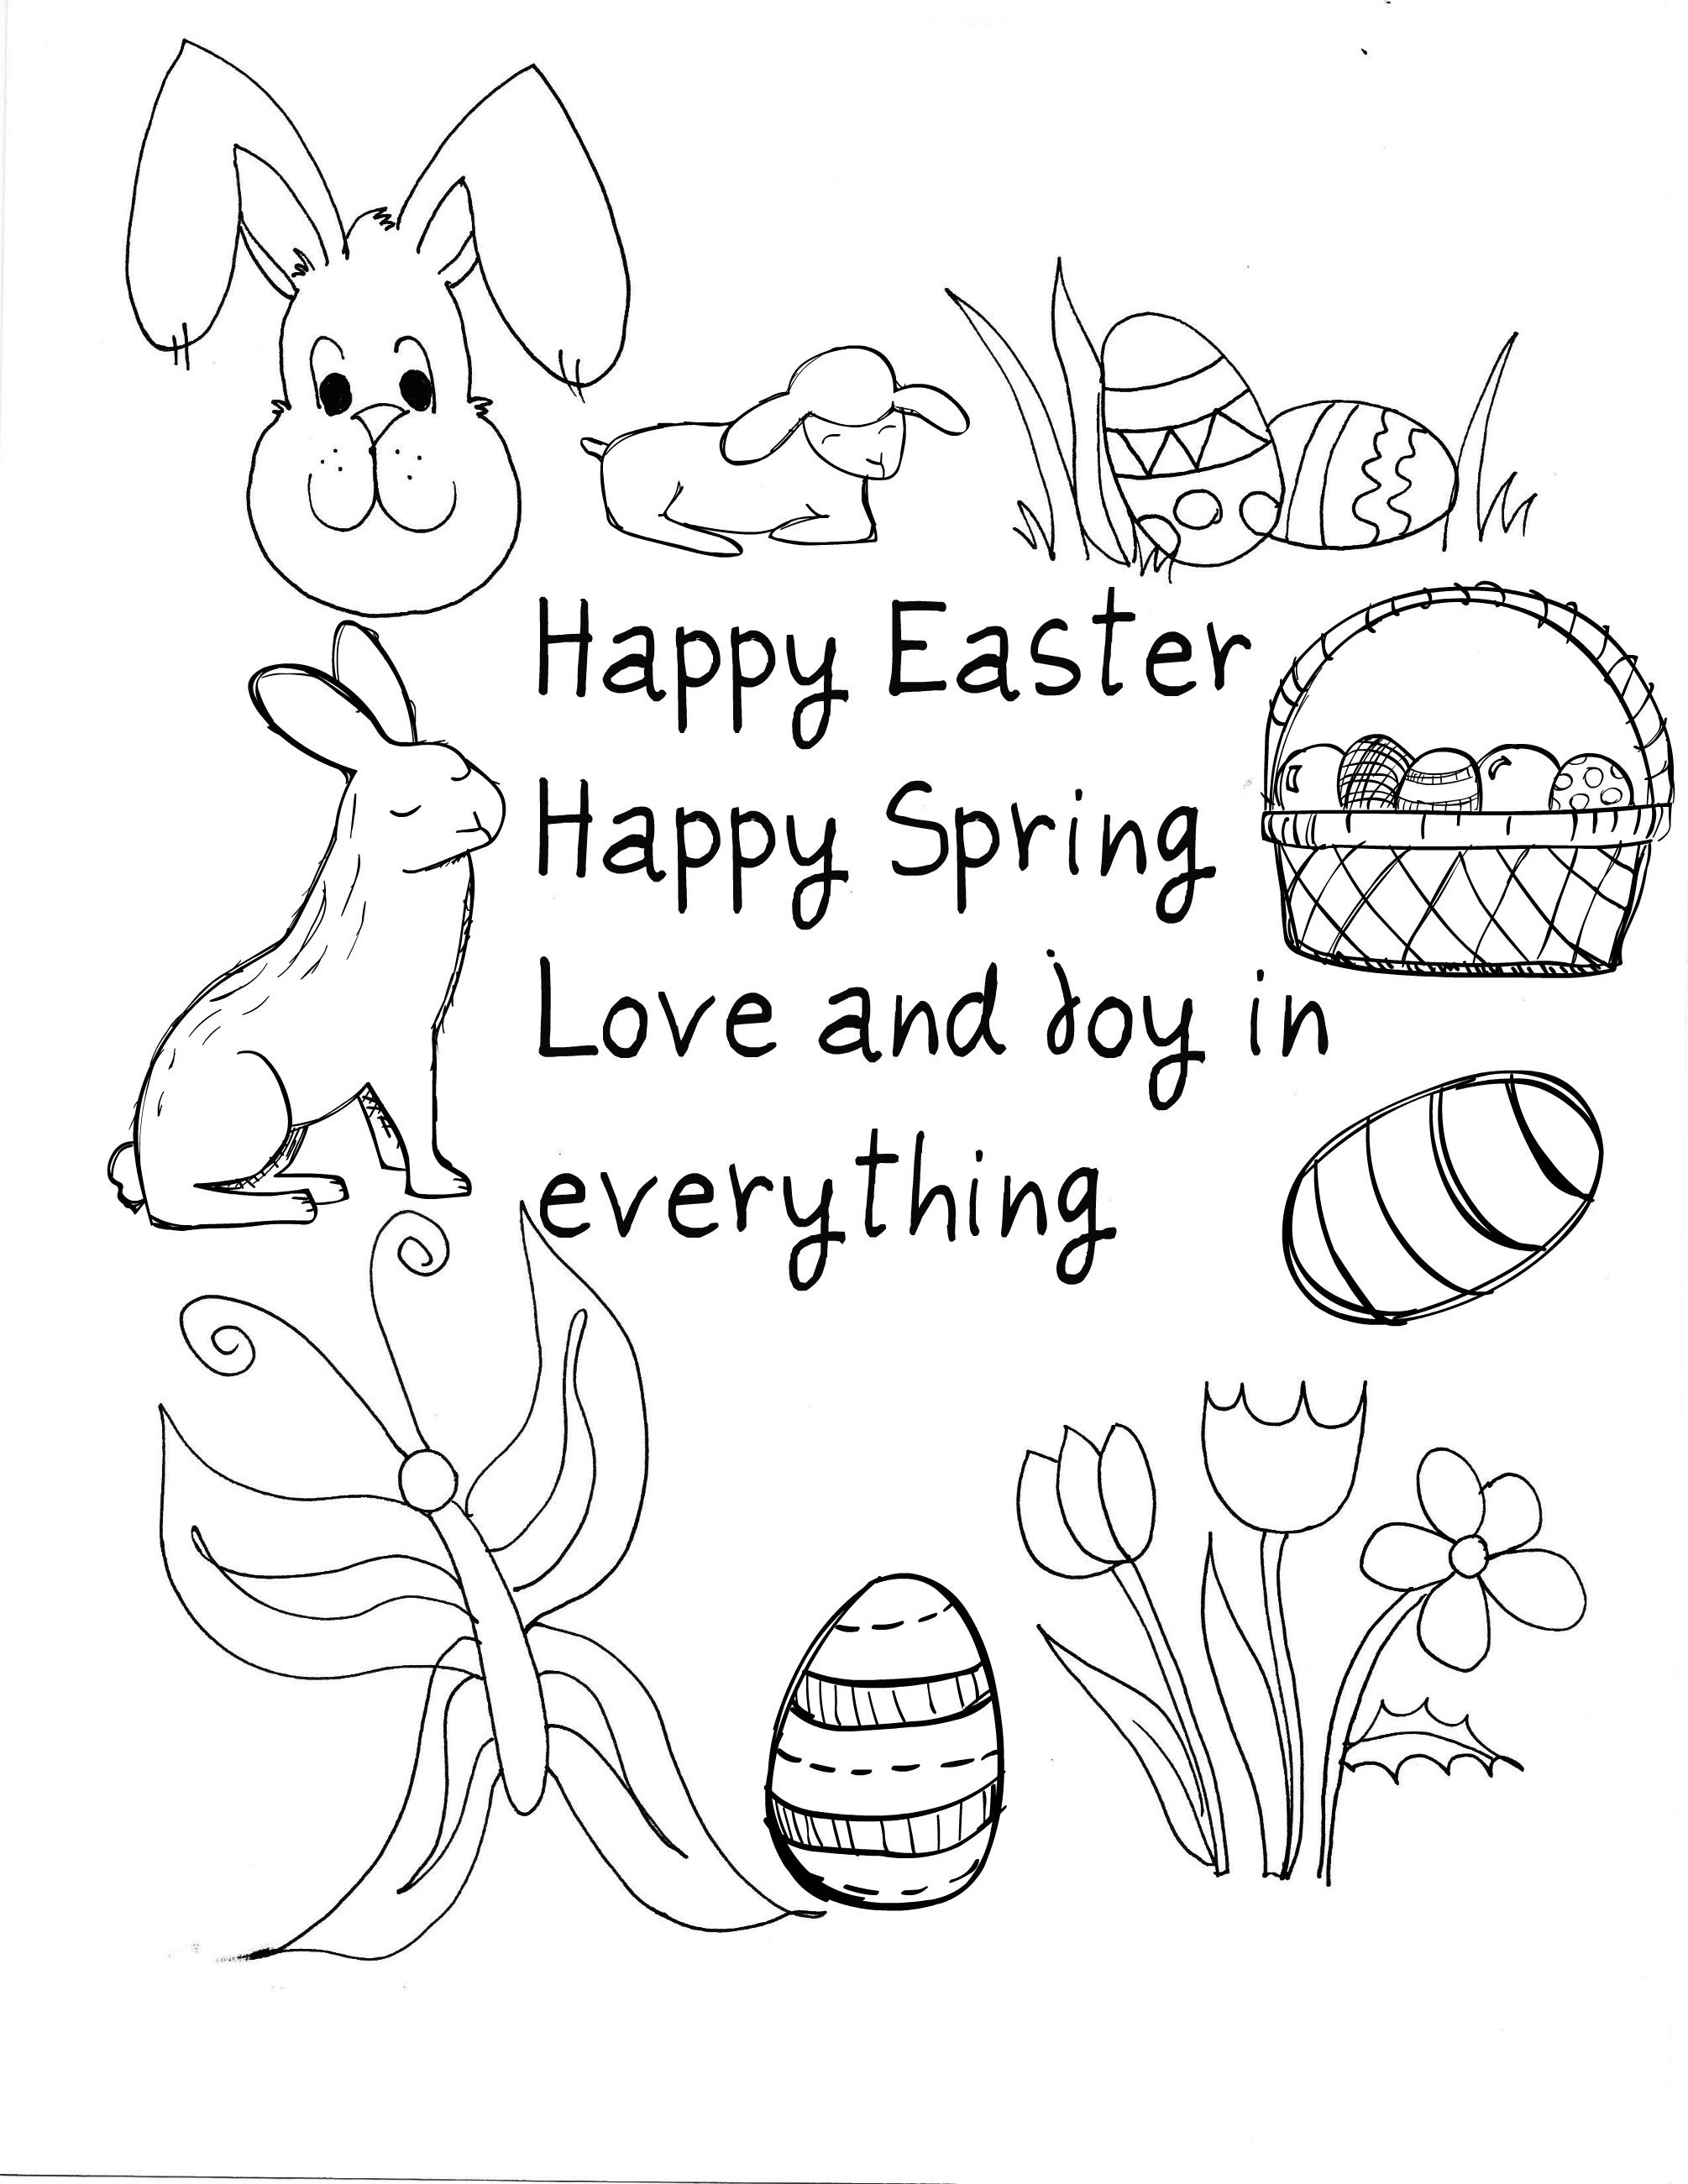 38 Happy Easter Coloring Page Happy Easter Wishes Free Coloring Download Of Easter Basket Coloring Pages to Print Gallery